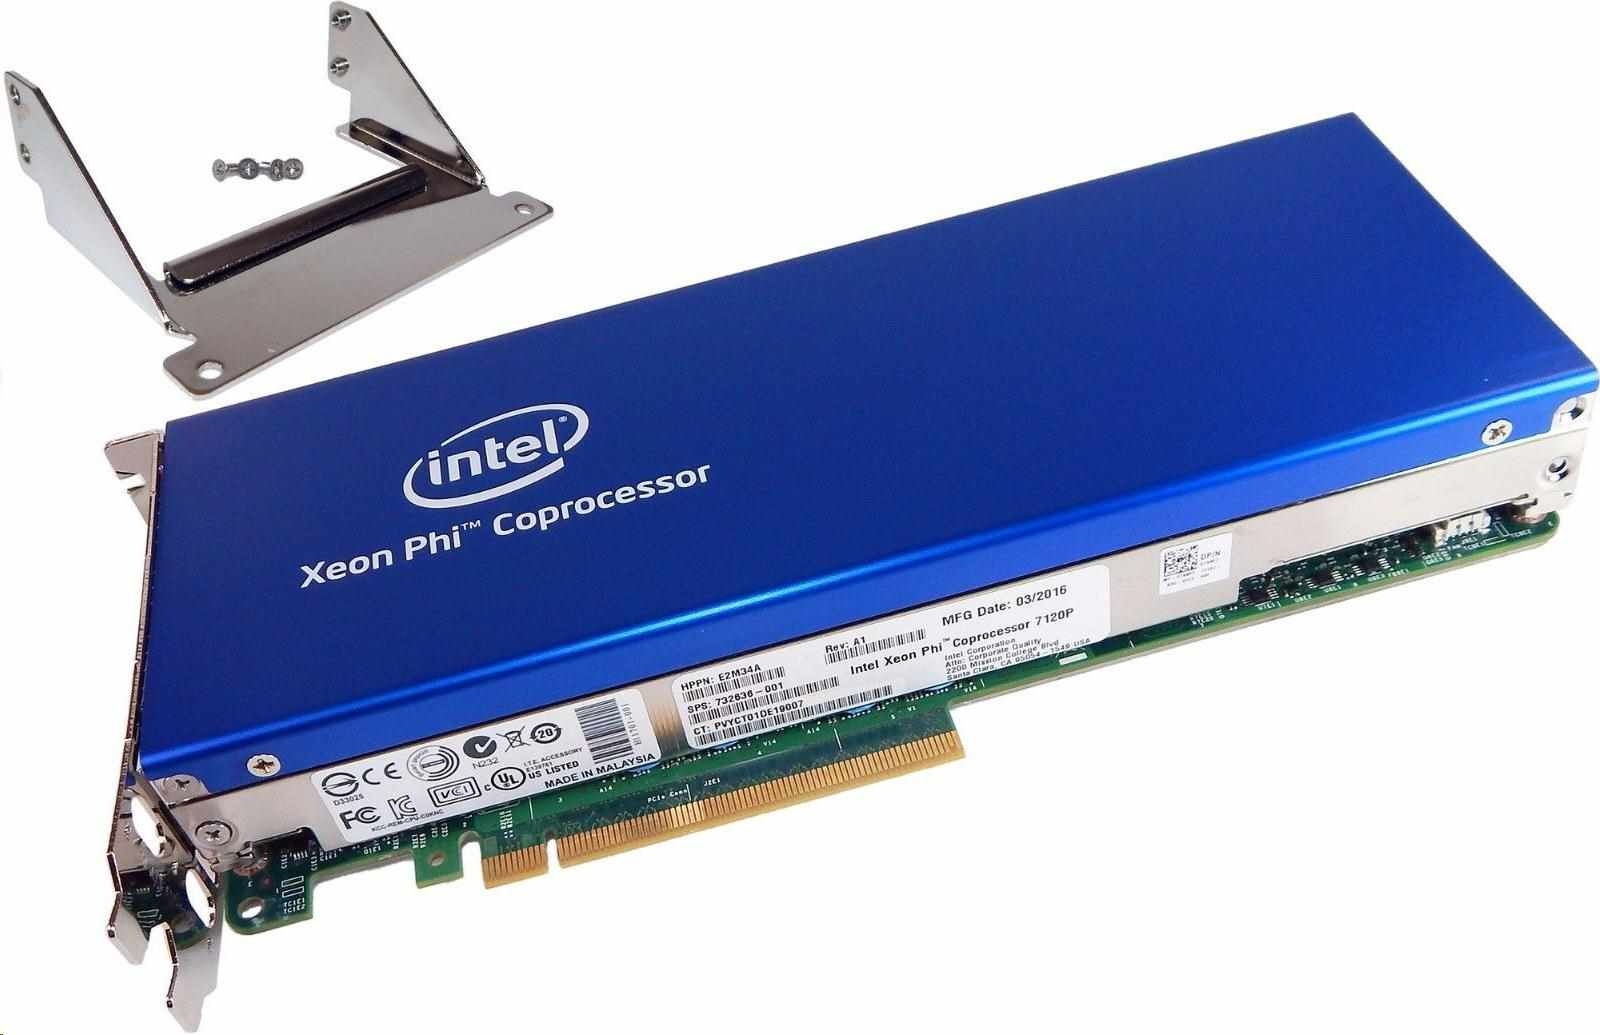 Intel® Xeon® Phi 7120P (16GB/300W) Coprocessor Kit